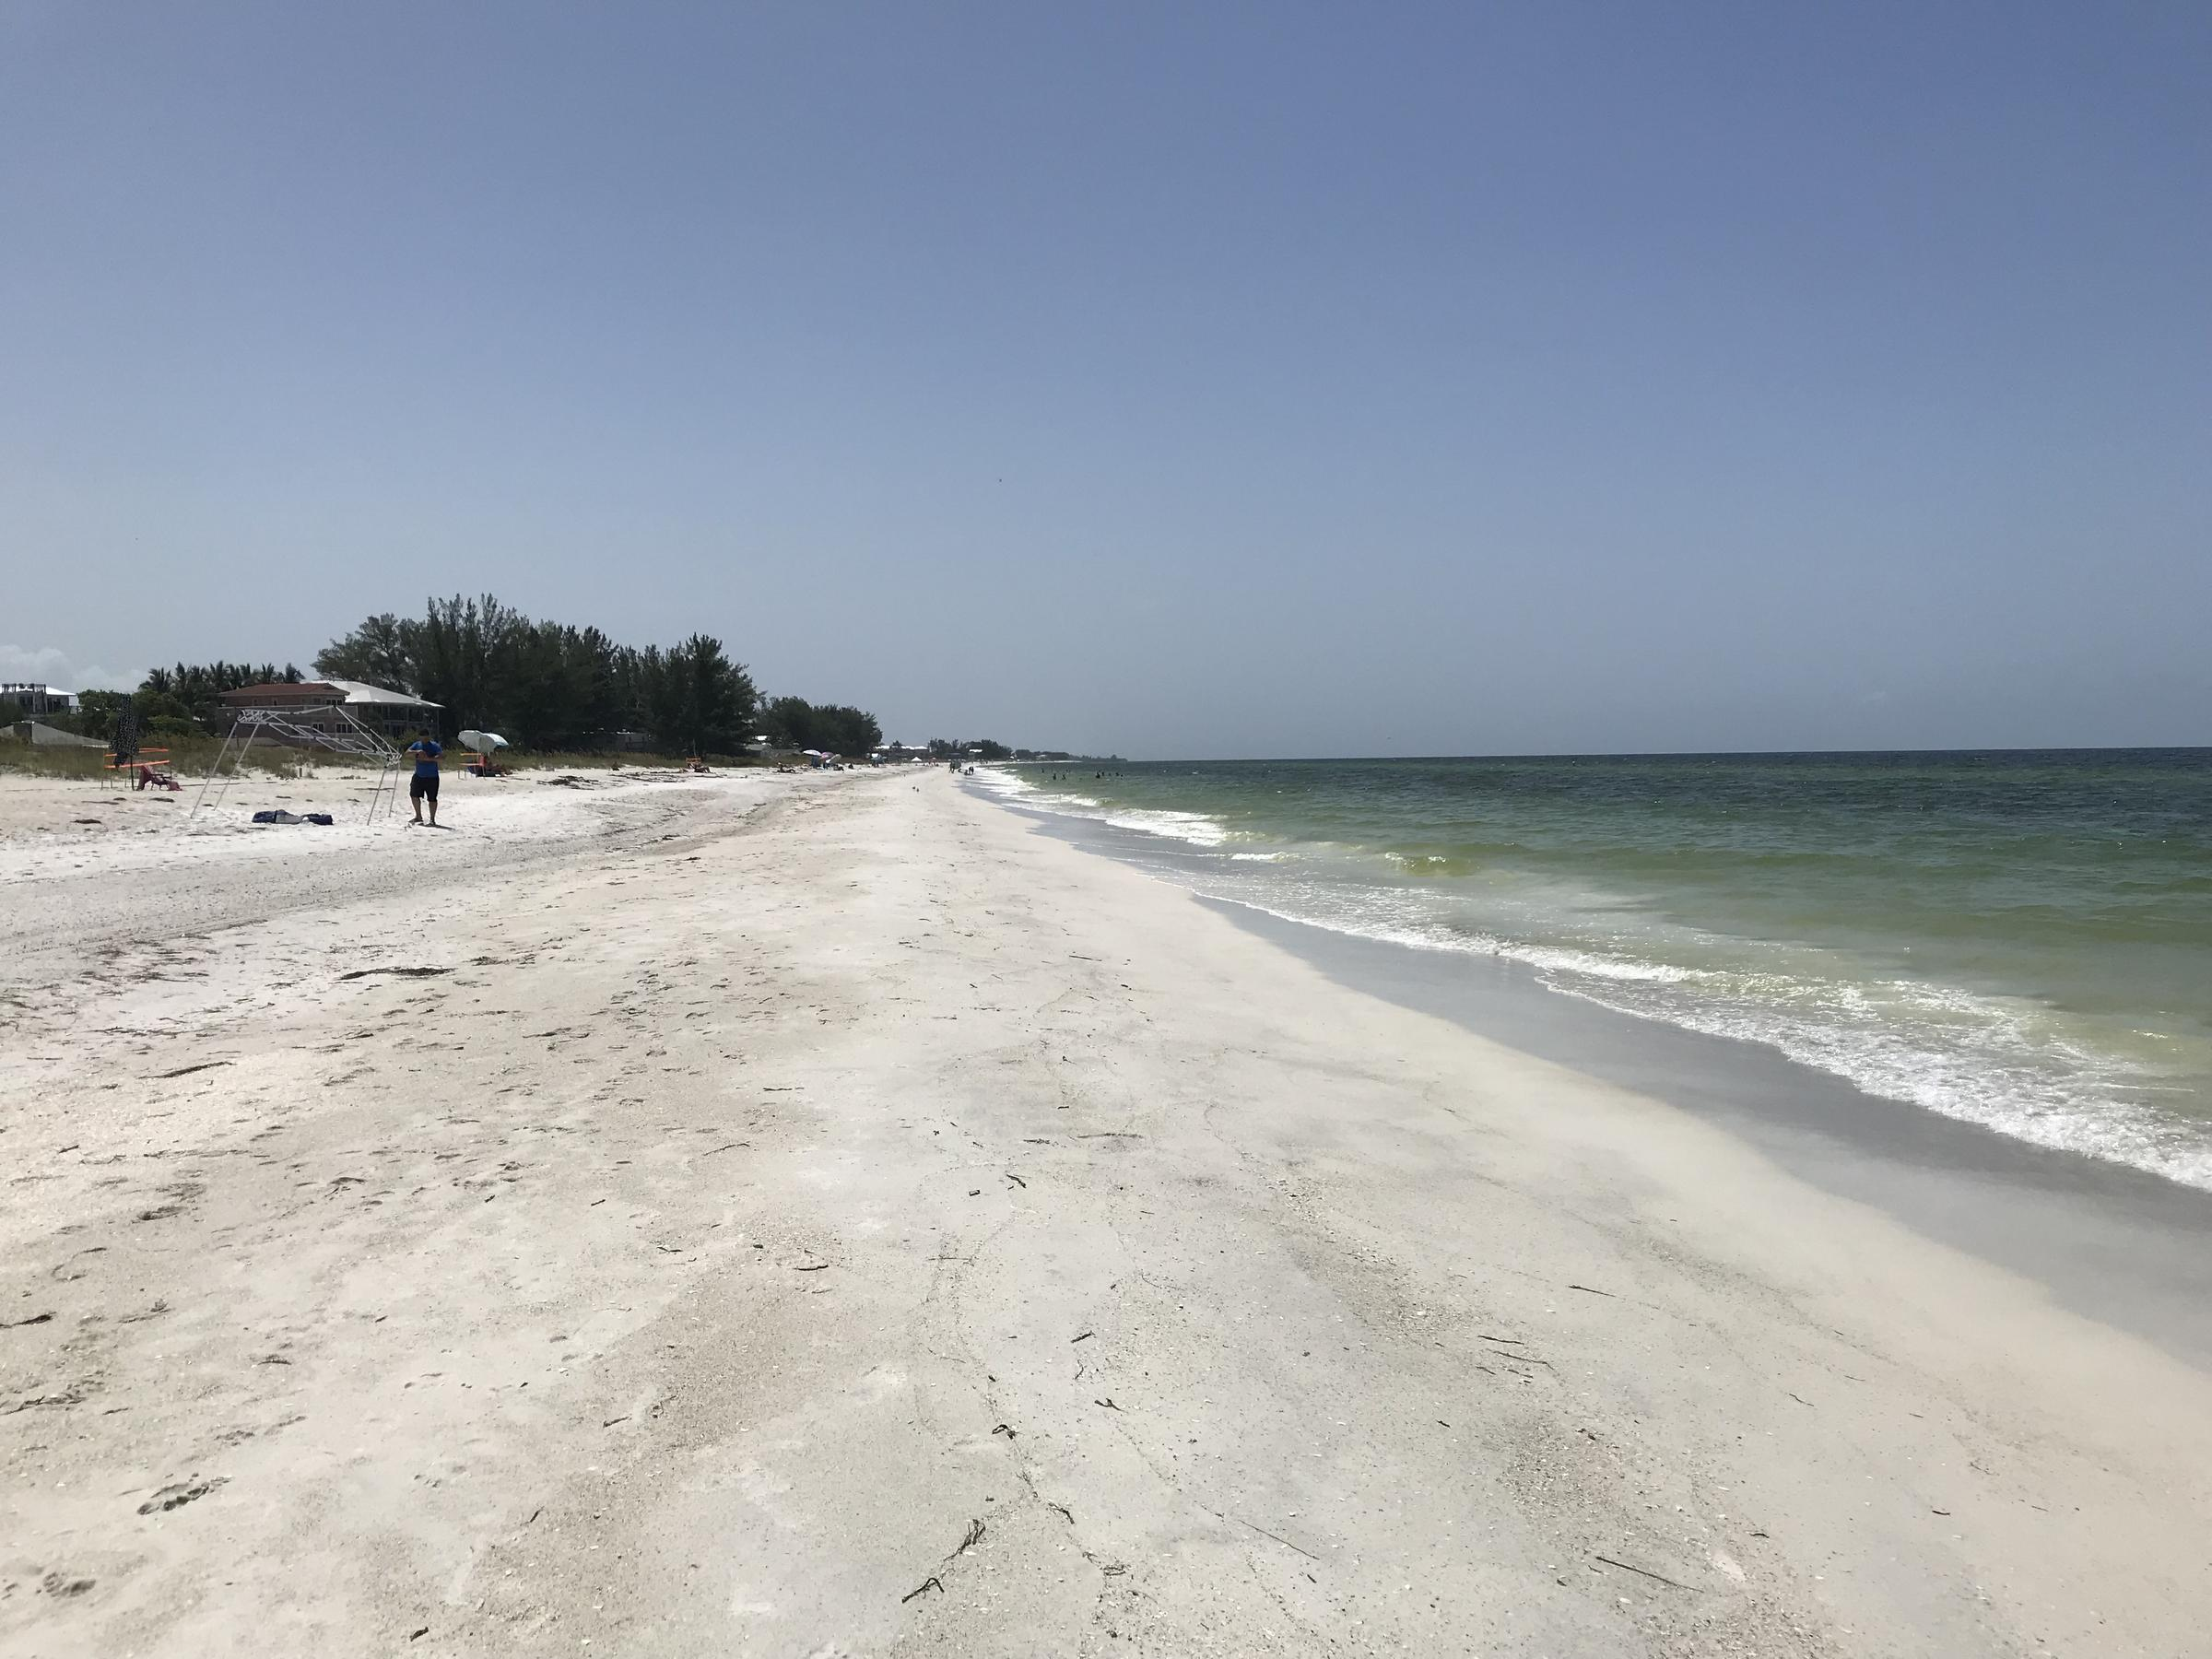 Holmes Beach Is One Of The Florida Beaches That Has Been Affected By Red Tide